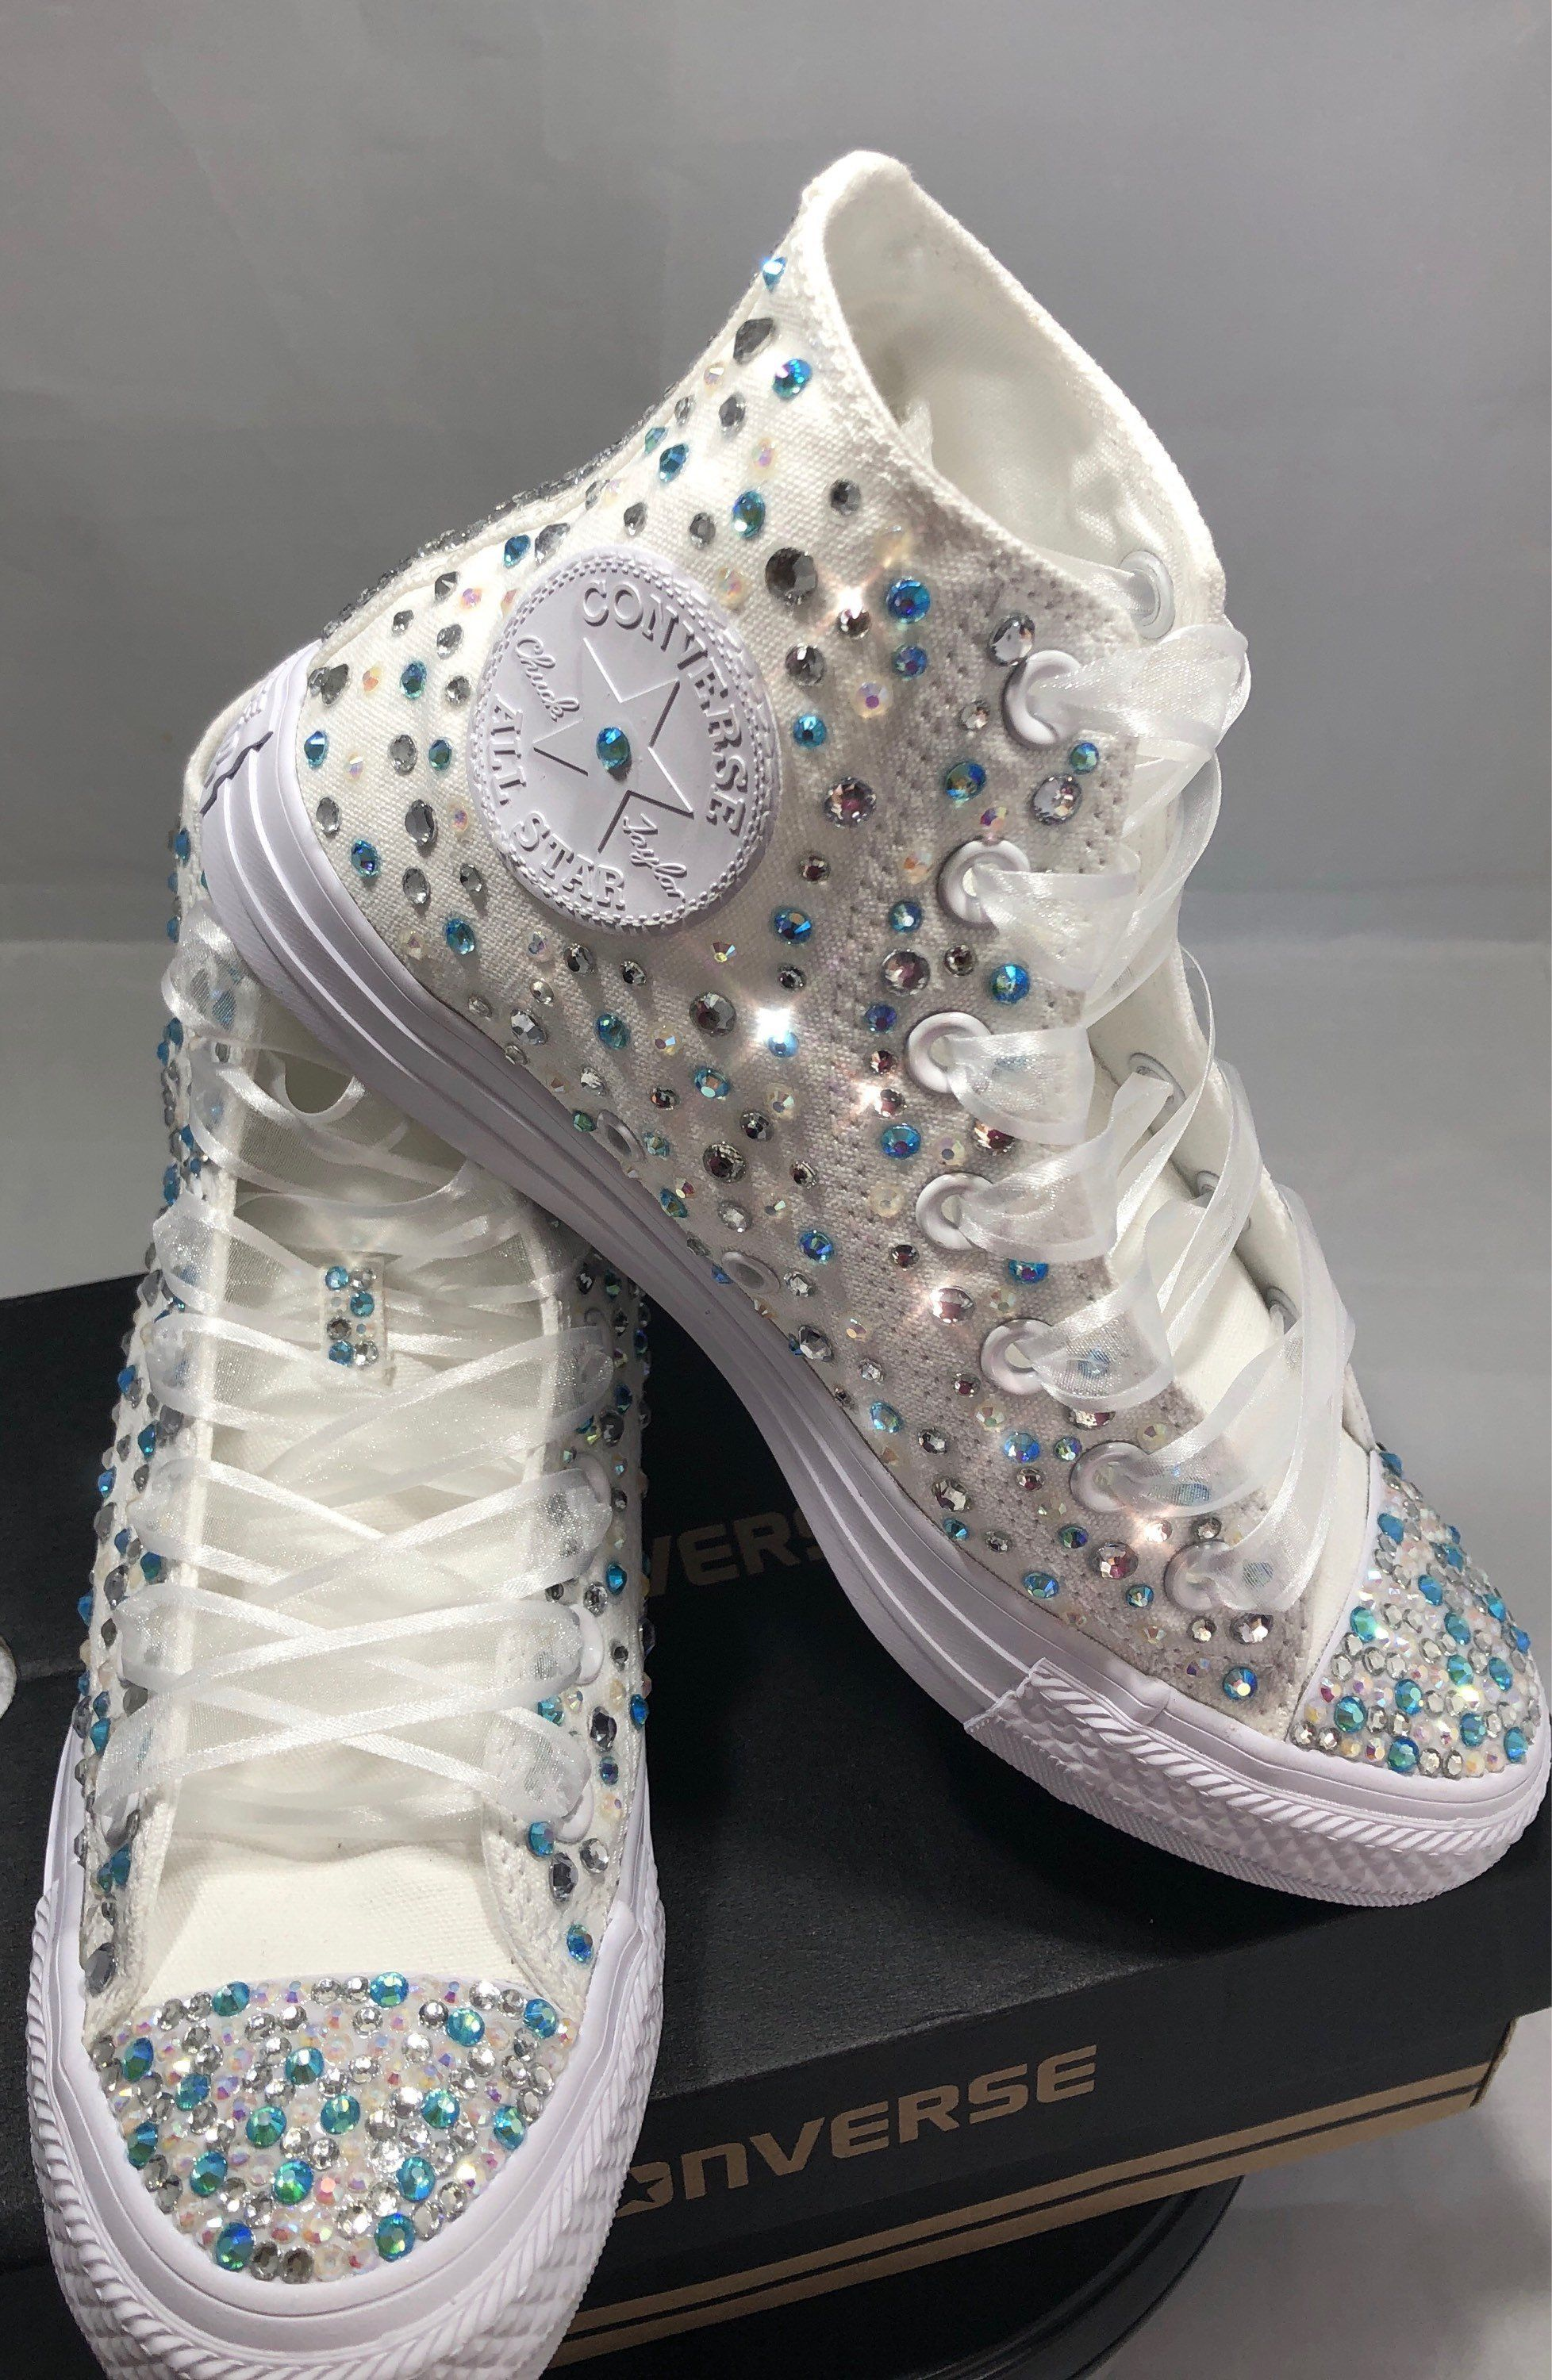 Converse bling diamonds rhinestone Red Flower Crystal 5 6 girl shoes custom NEW